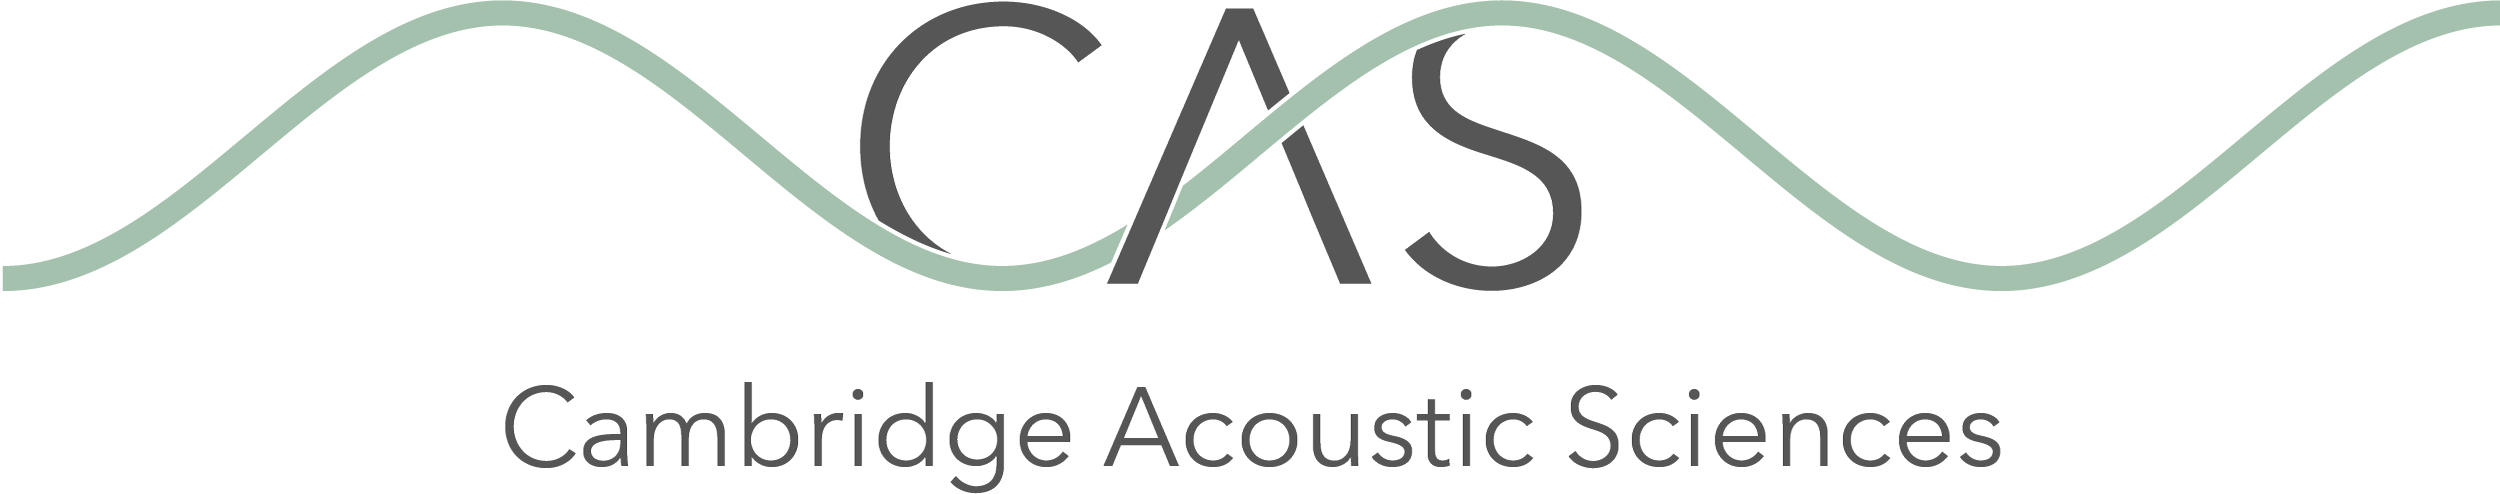 Cambridge Acoustic Sciences